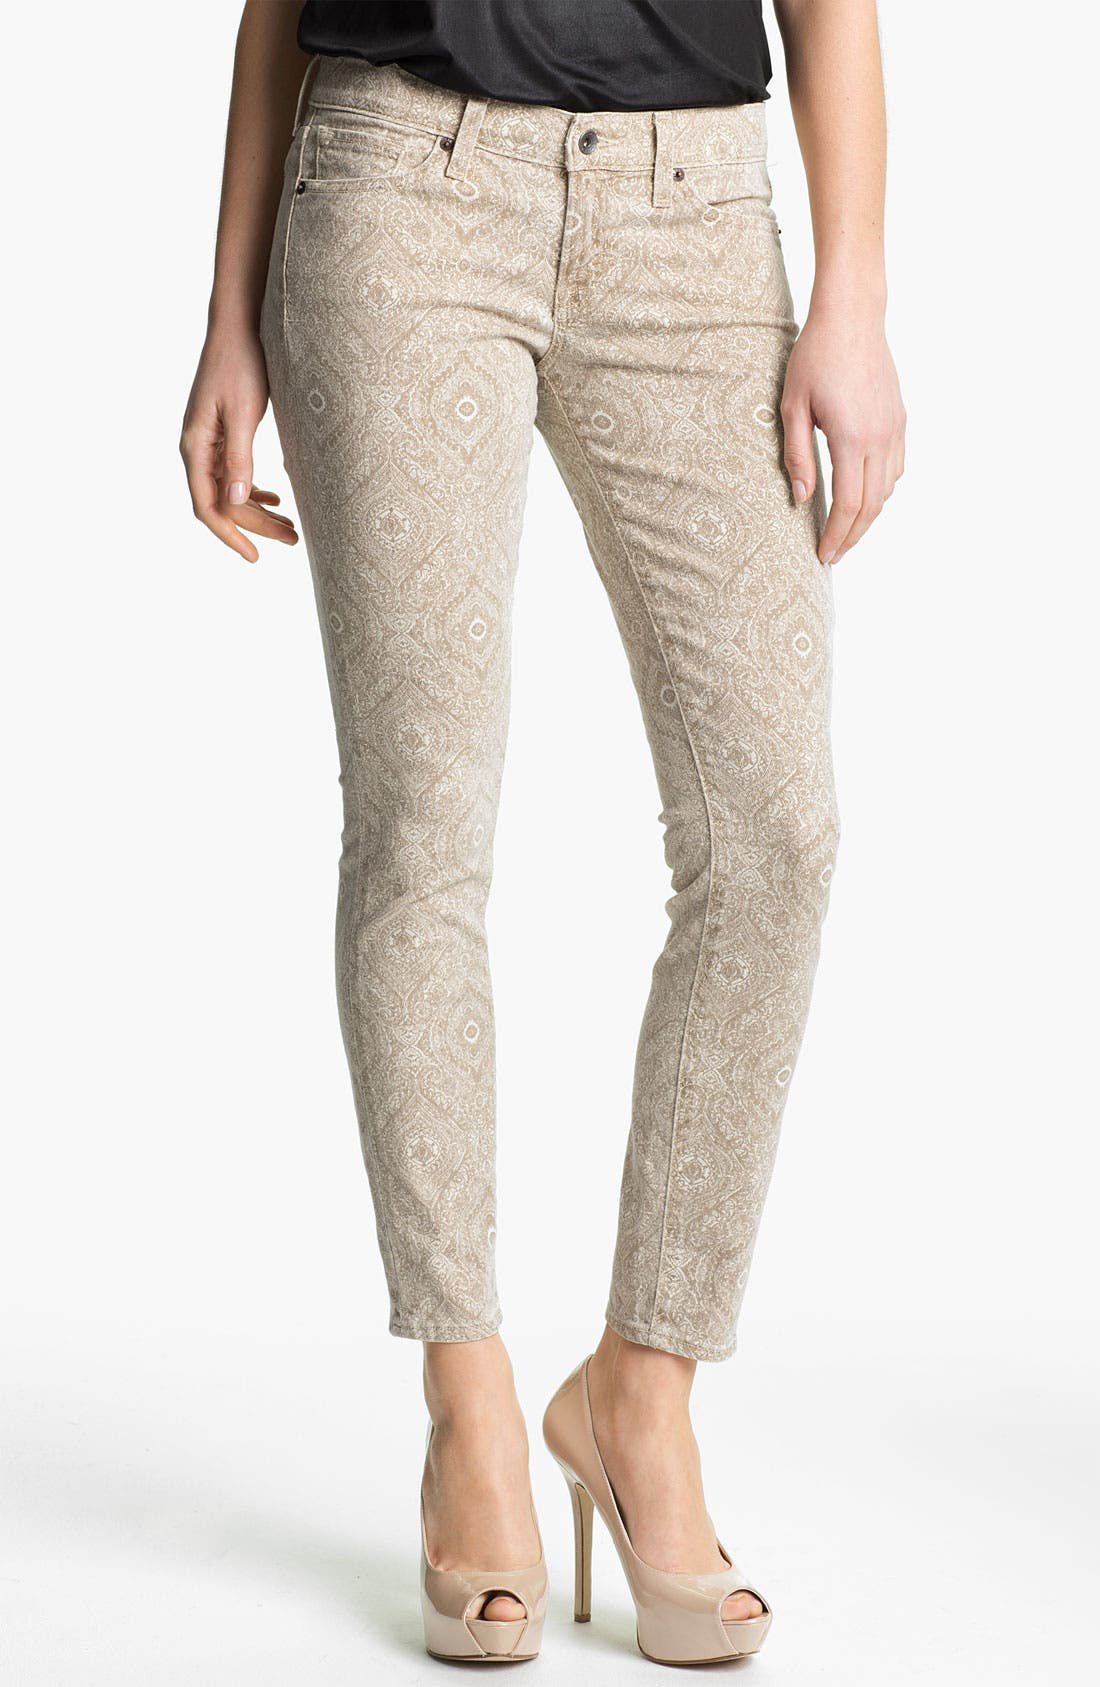 Main Image - Lucky Brand 'Charlie' Print Skinny Jeans (Online Exclusive)